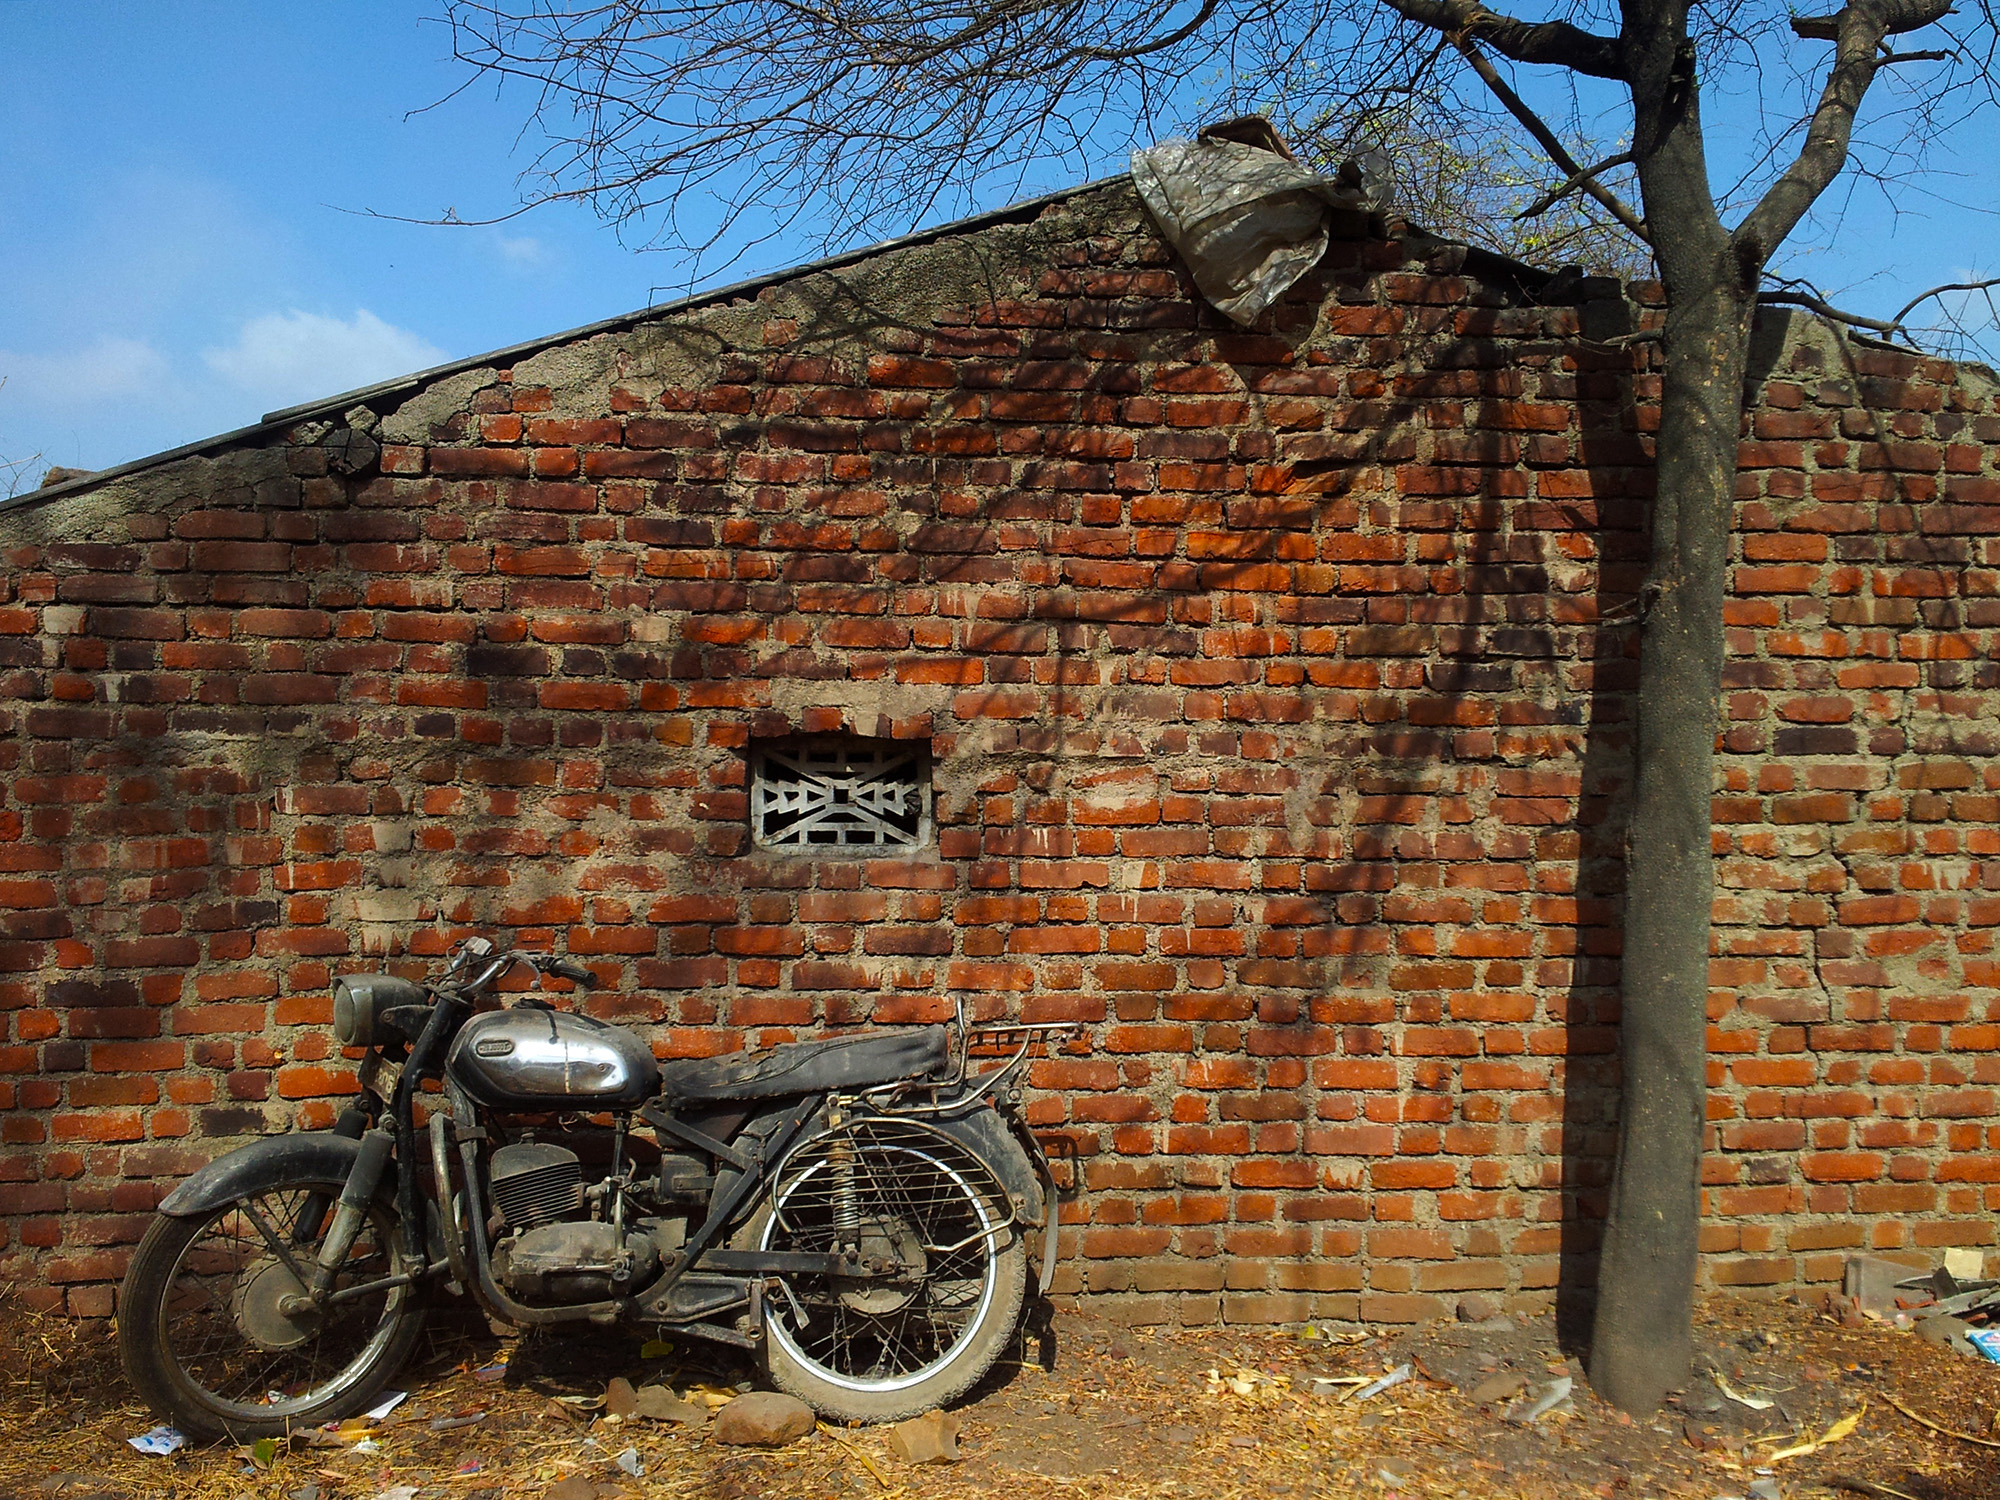 The old motor bike against the red brick wall and the dead tree instantly attracted me to capture all of them in a frame.All the components in the frame has a sense of